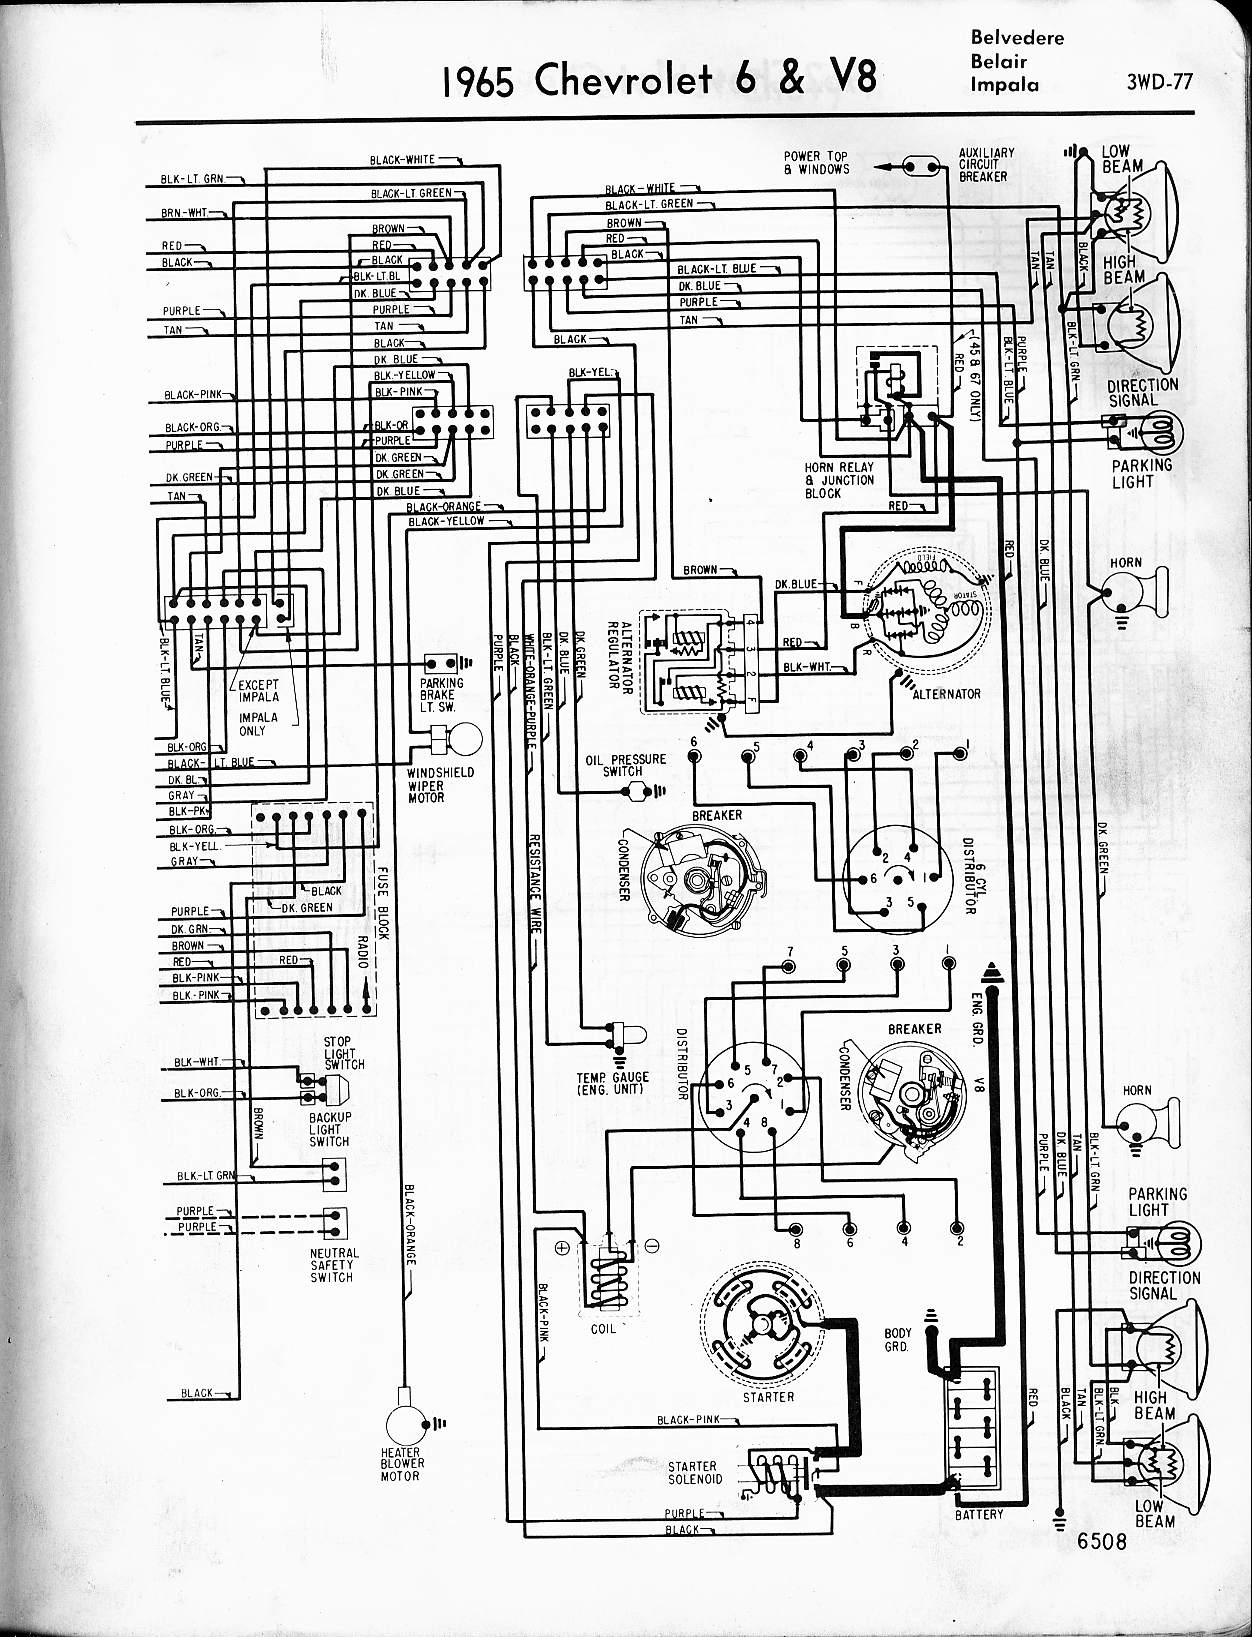 MWireChev65_3WD 077 chevy diagrams 1964 impala wiring diagram at n-0.co